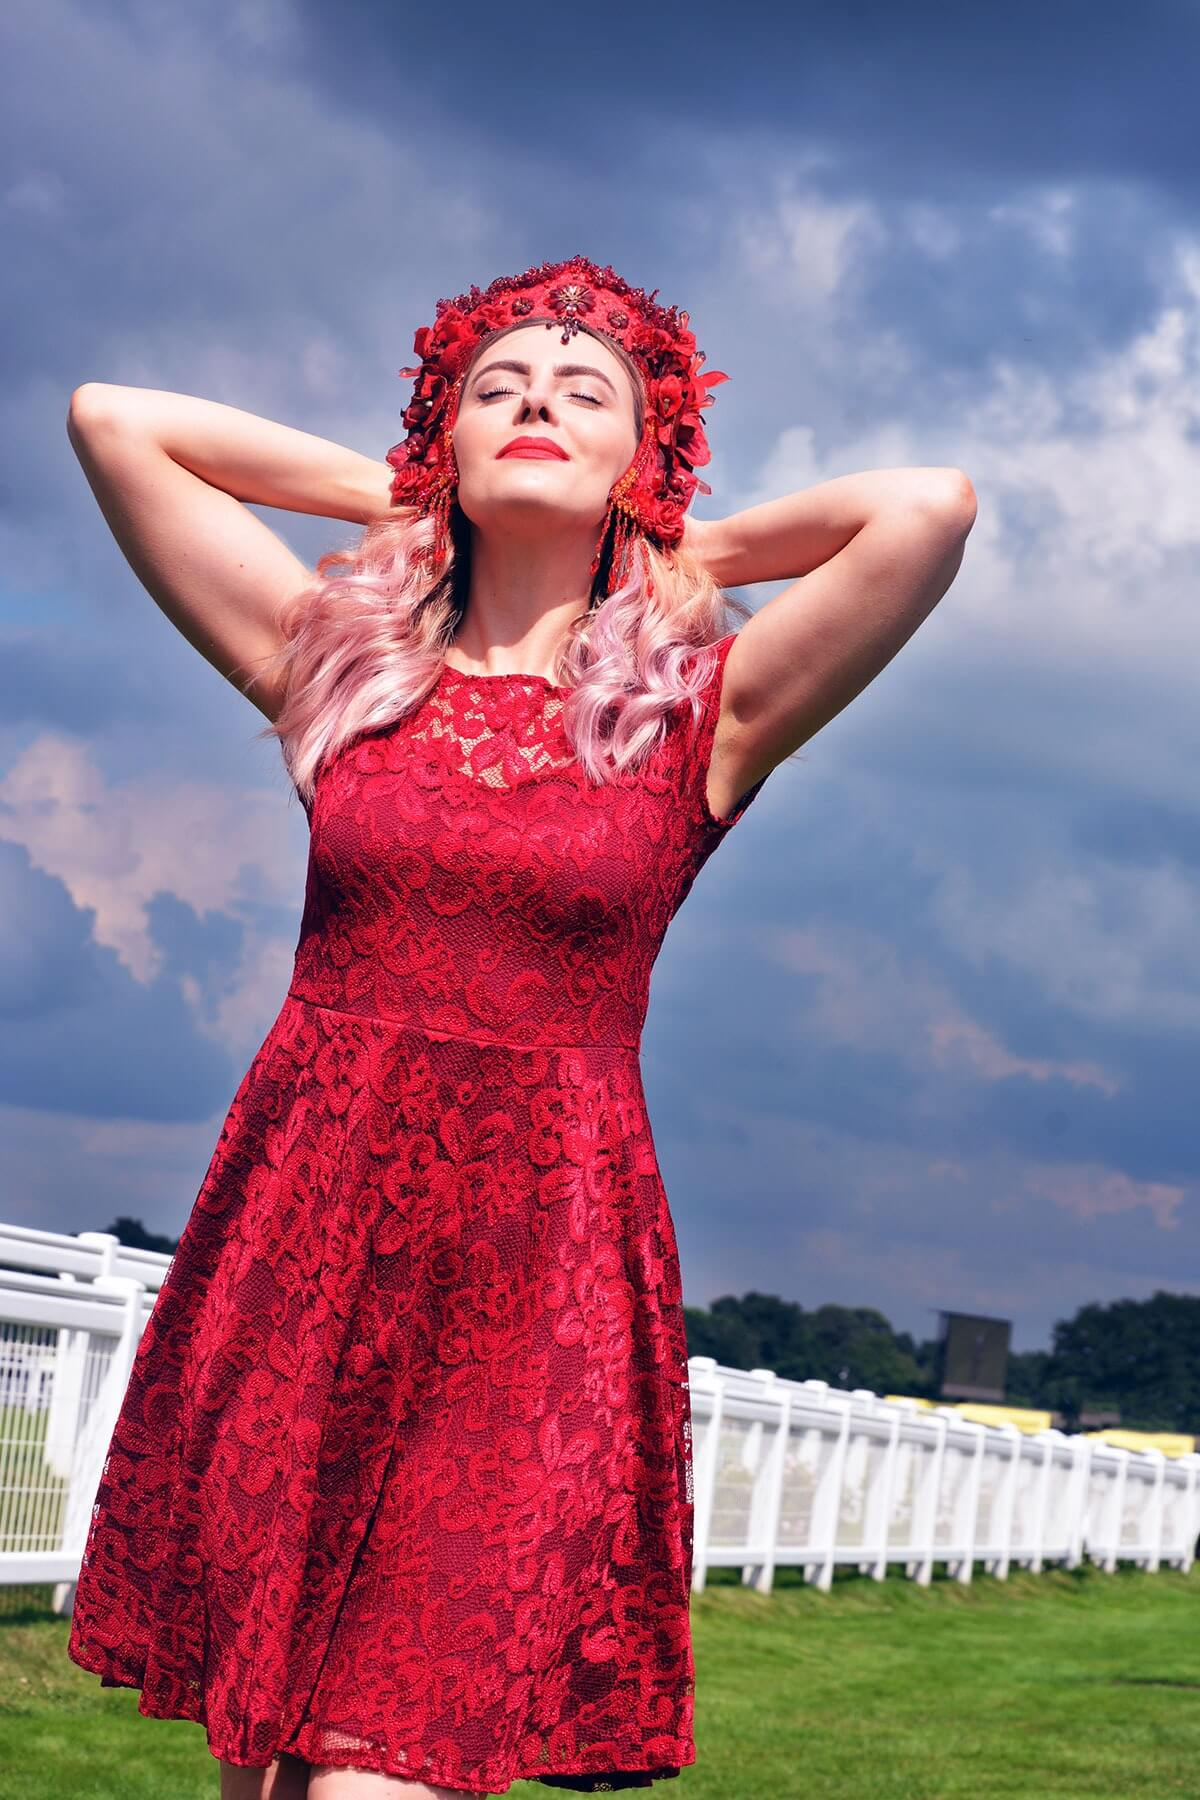 Edita at Royal Ascot in Hot Squash and Creations by Liv Free 11